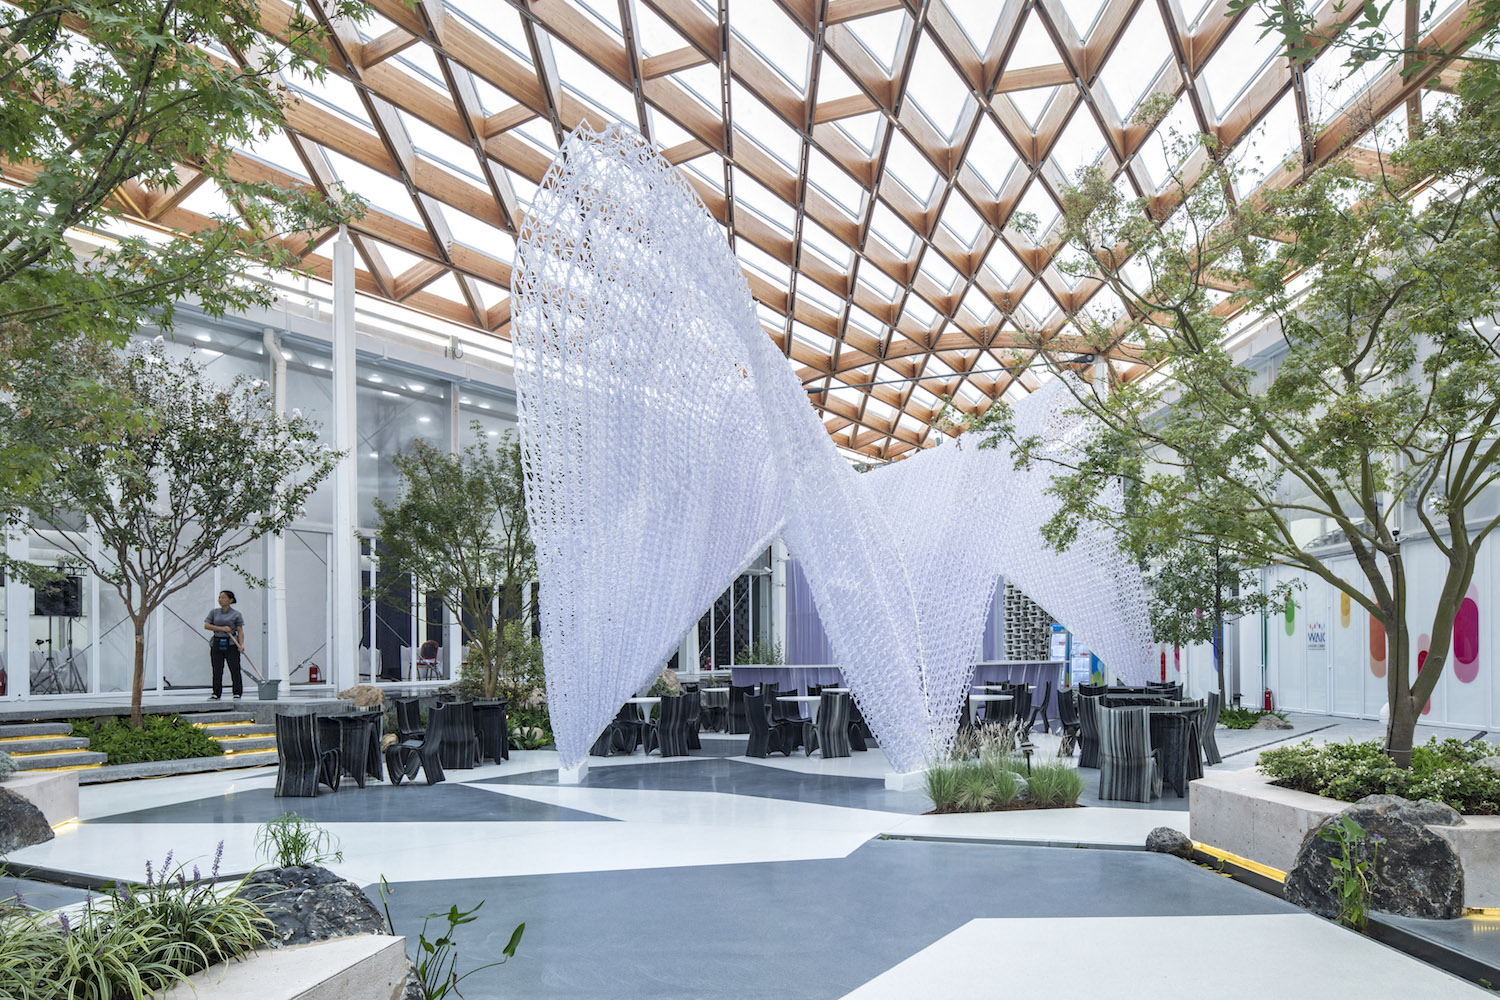 3D Robotic Printed Coffee Pavilion in the shared garden Fangfang Tian